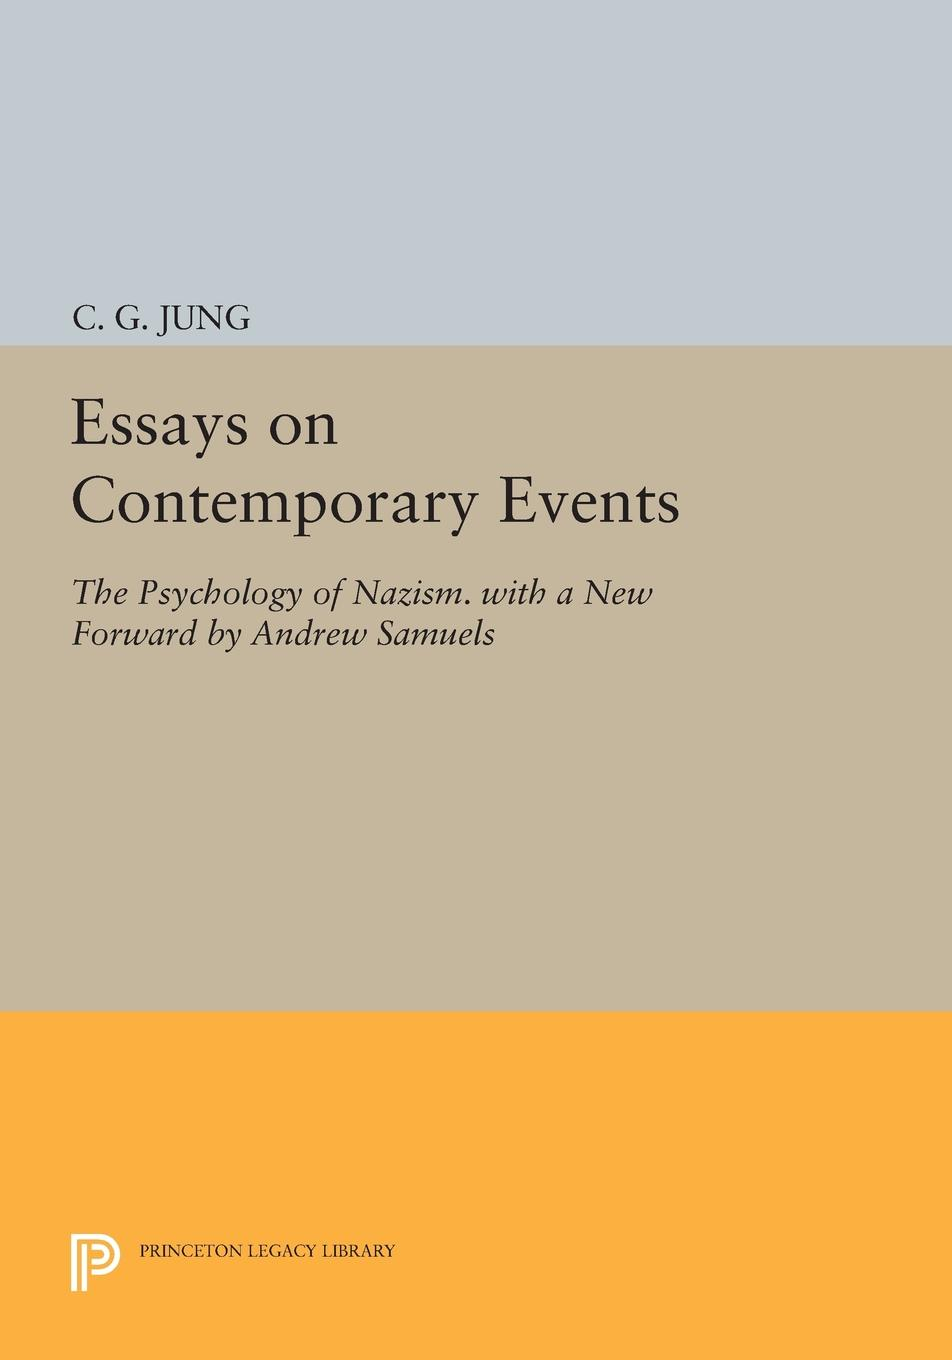 Essays on Contemporary Events